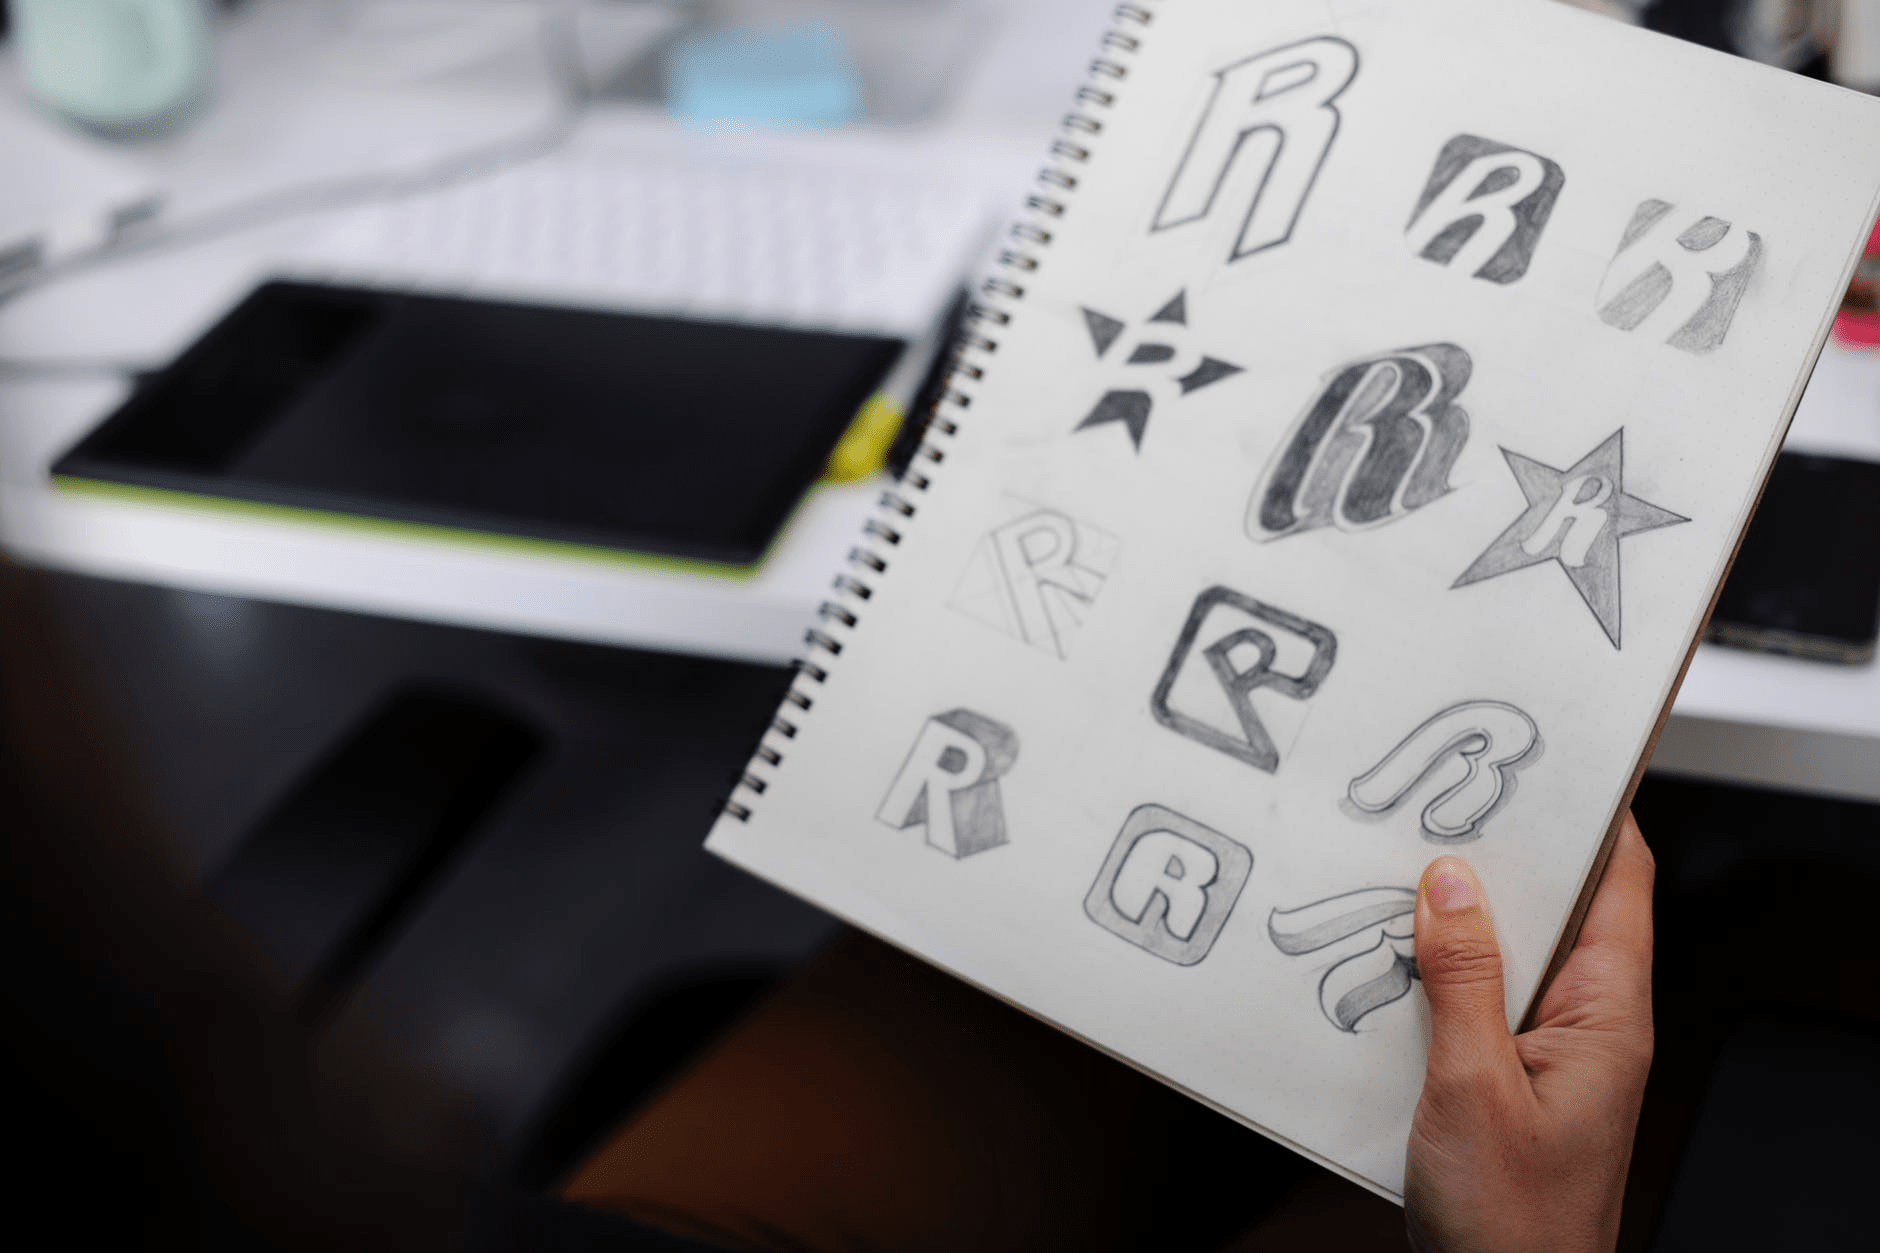 Logo Design Contest vs Hiring a Graphic Designer – Which is Better?